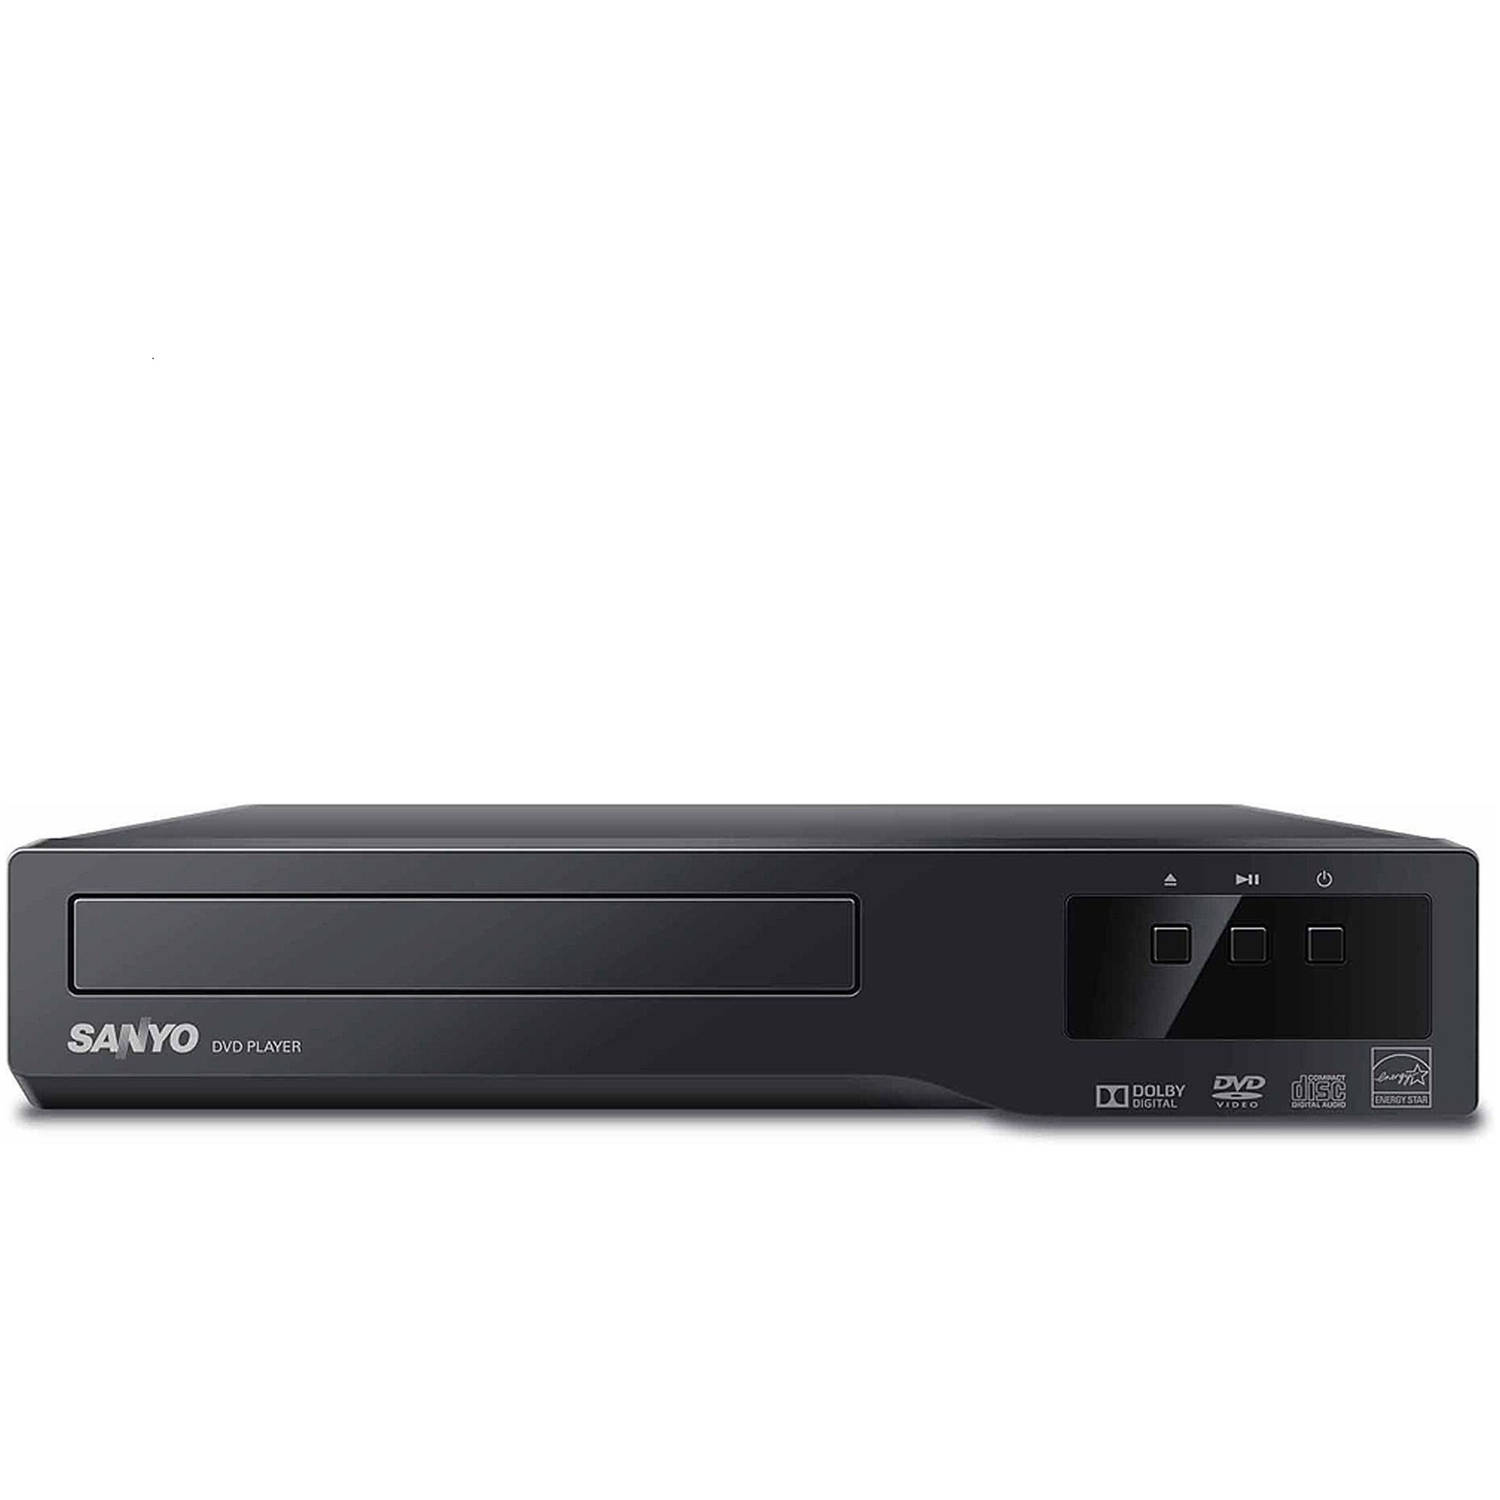 Sanyo DVD Player (RFWDP105F) Refurbished